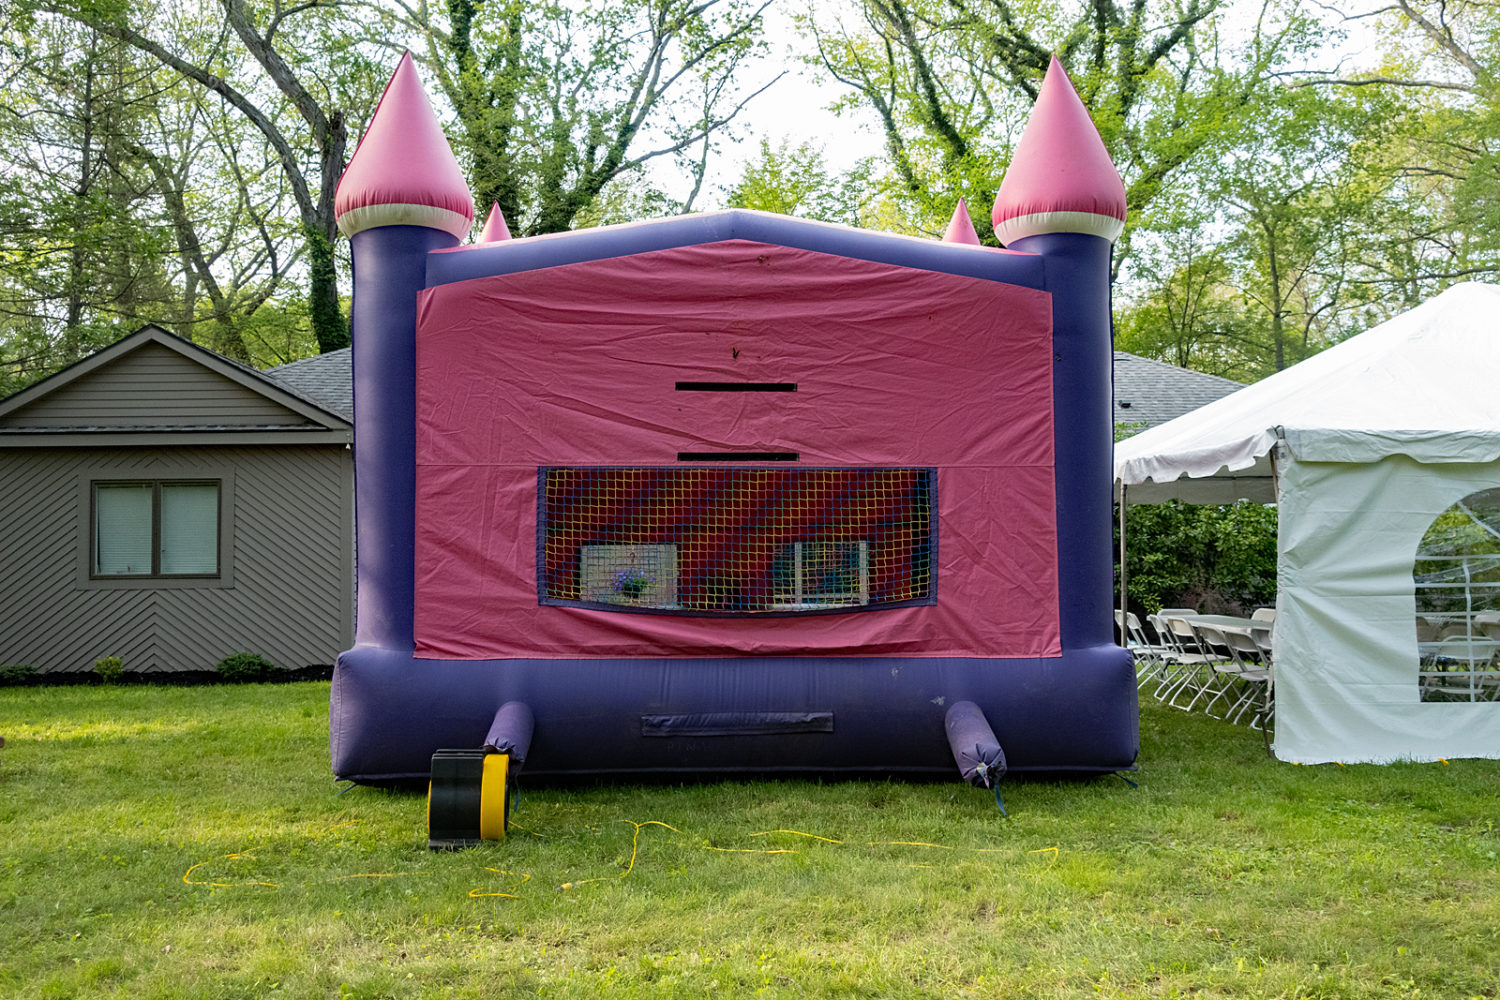 Bounce house down the street